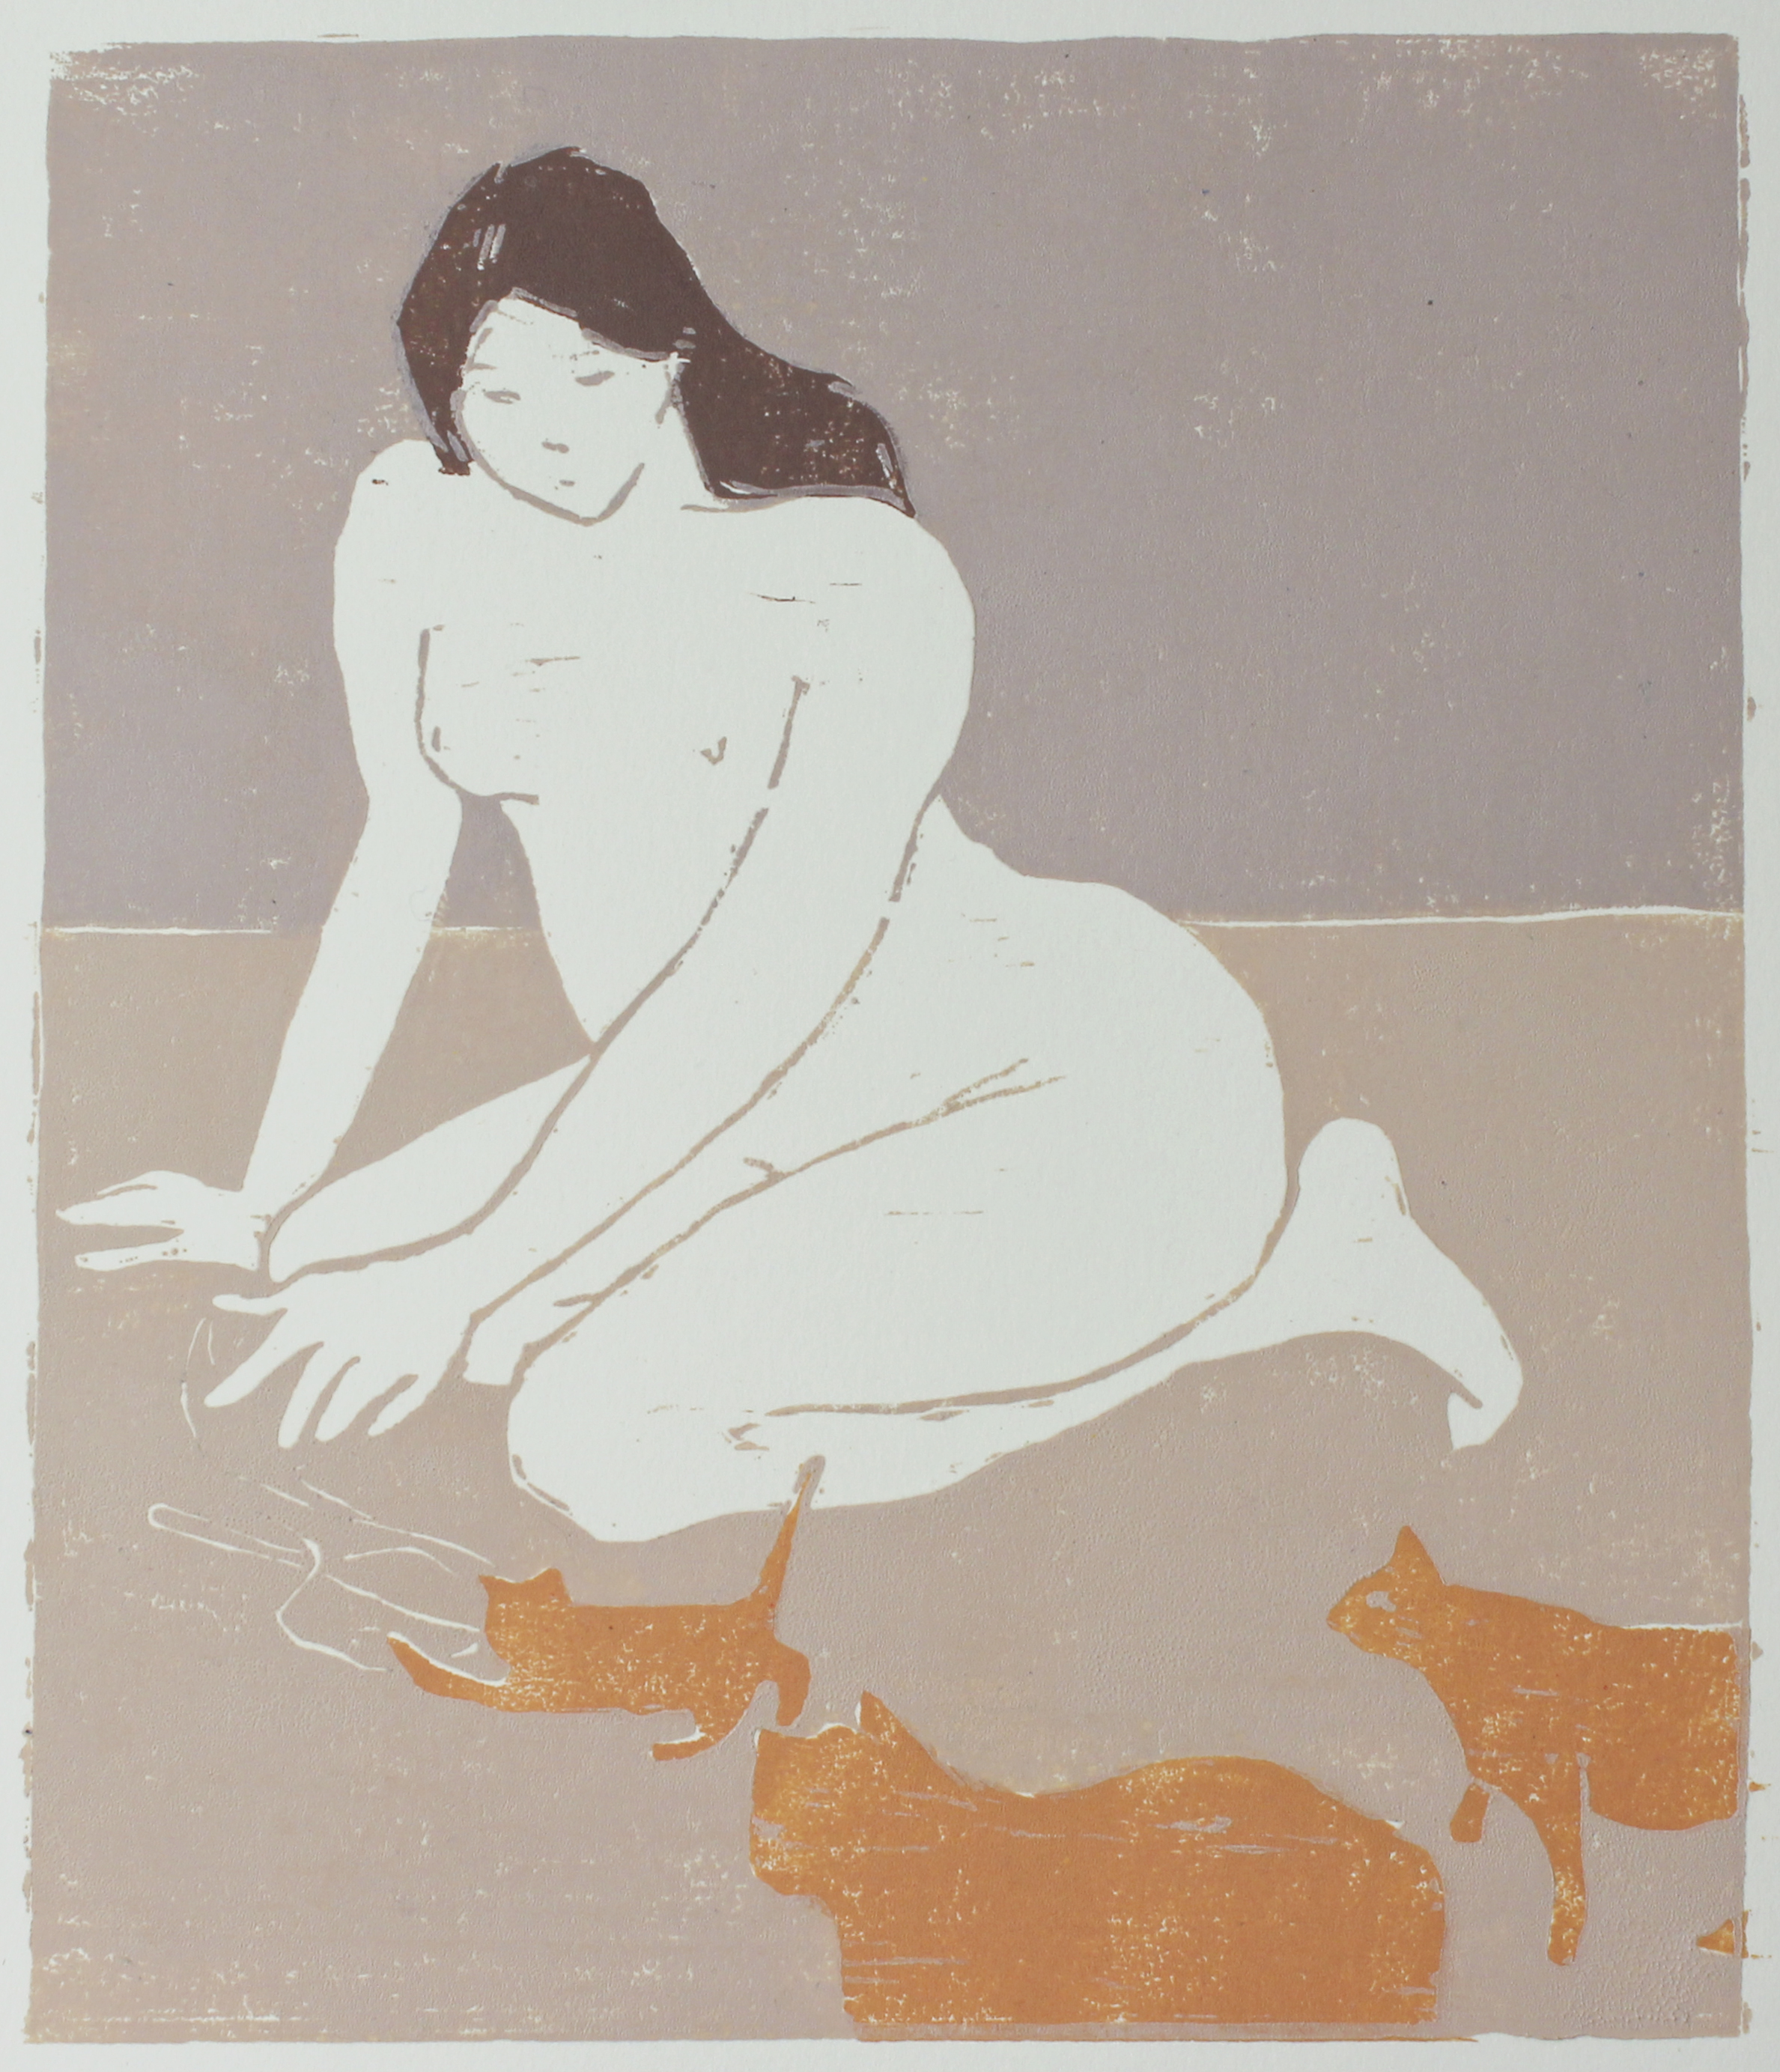 """cat lady  woodblock print edition of 1 8.5x10"""" 2018  private collection Nashville, TN"""